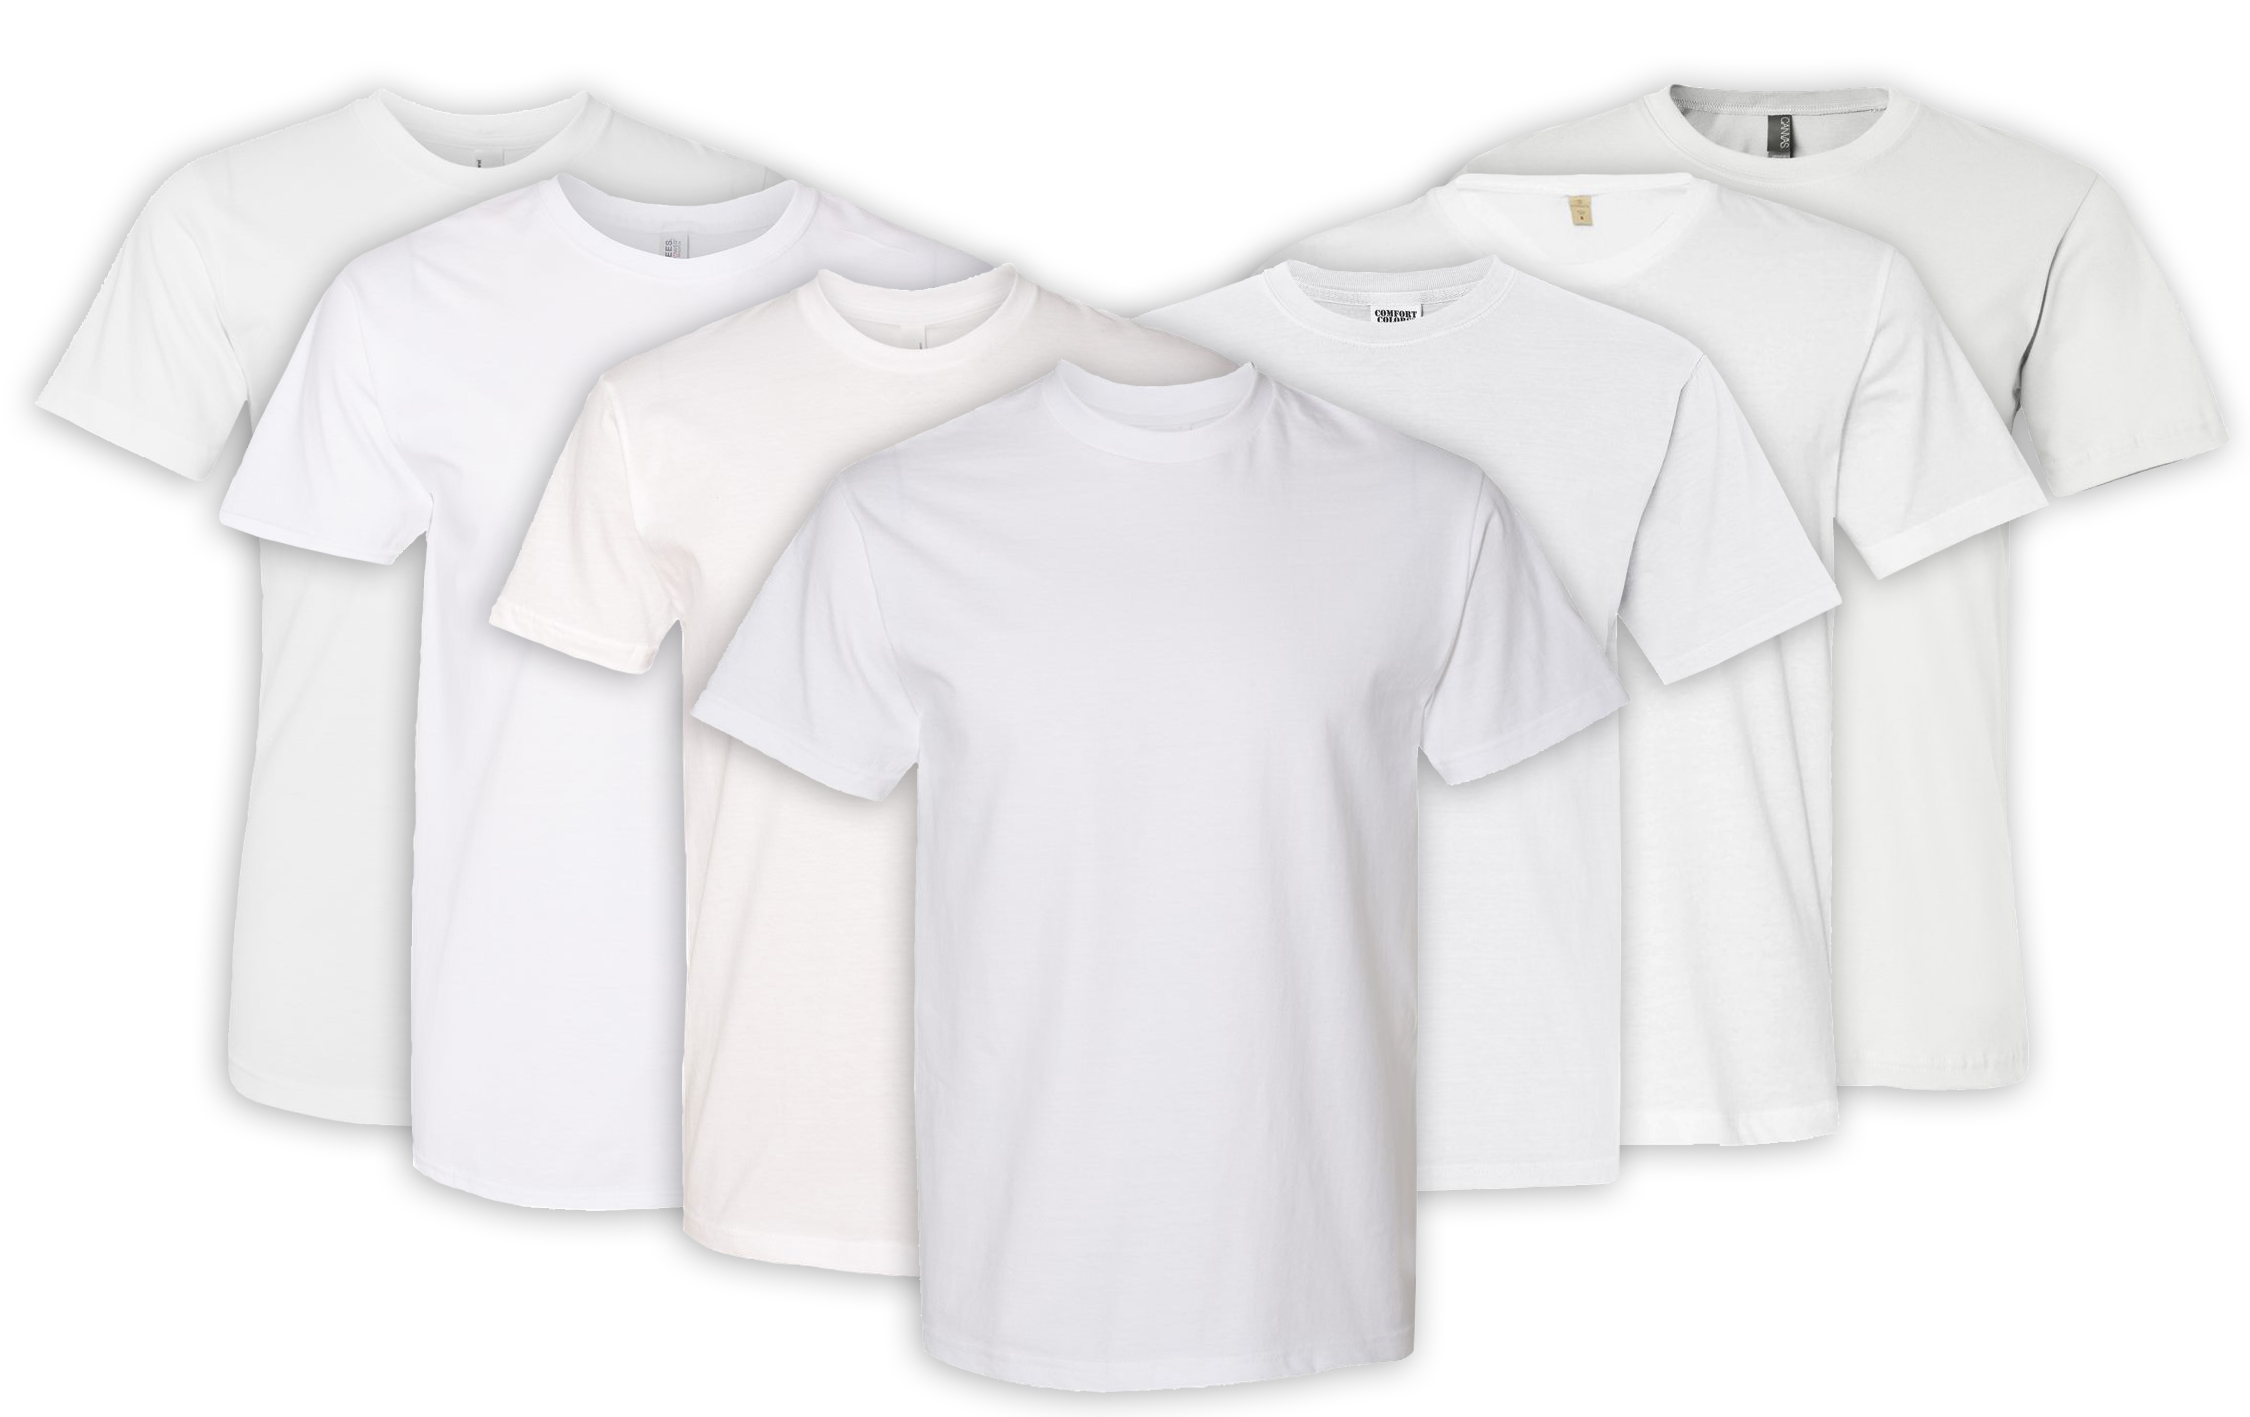 2019 Unisex T-Shirt OFF#WHITE Printed Round Nneck Letter Loose Tee New